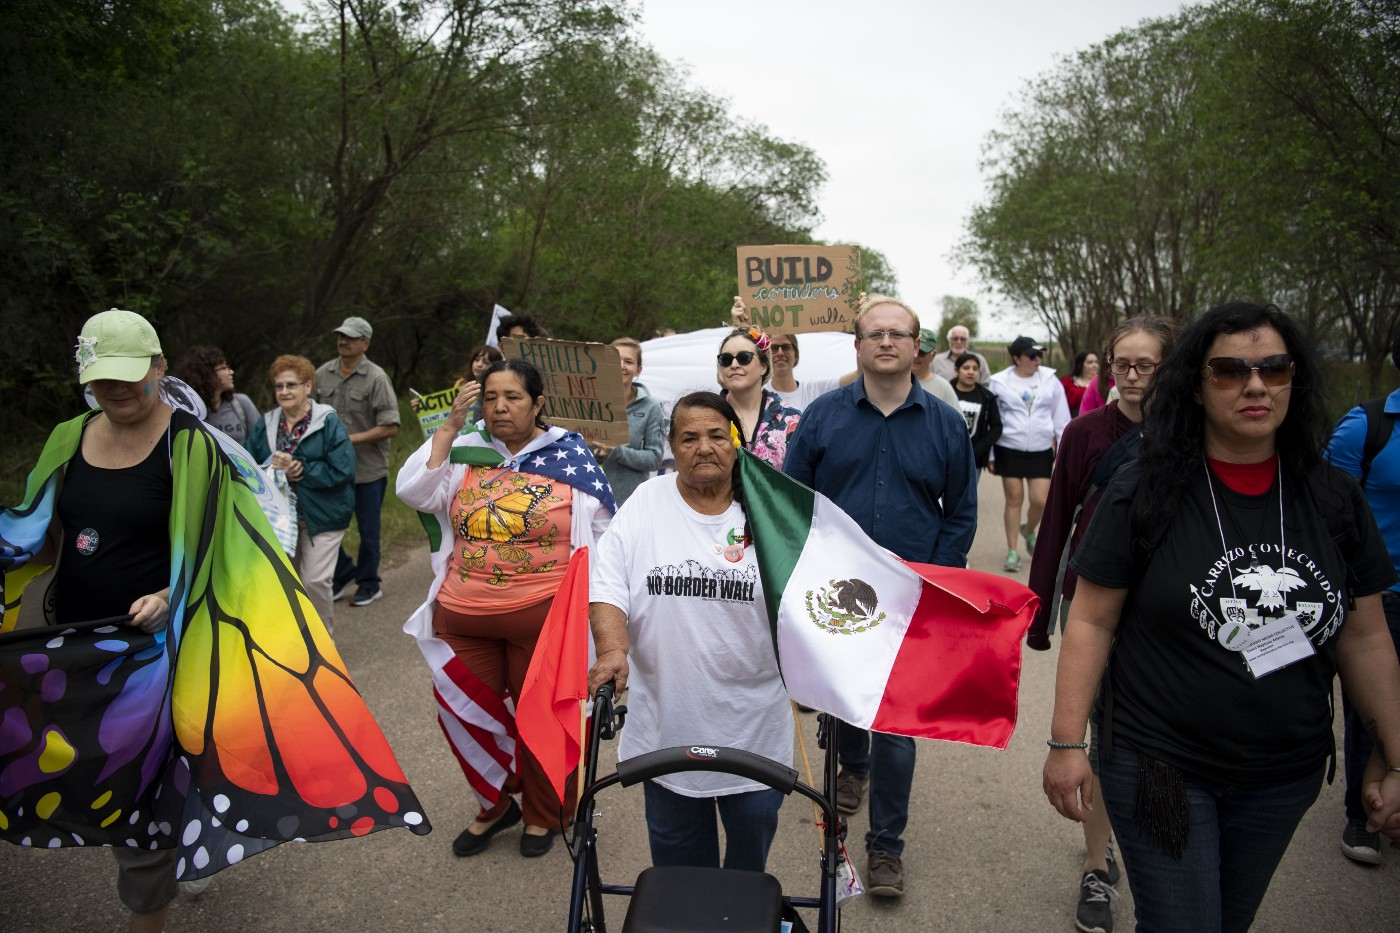 The Rio Grande Valley Climate March at the National Butterfly Center in Mission, Texas on March 3, 2019.